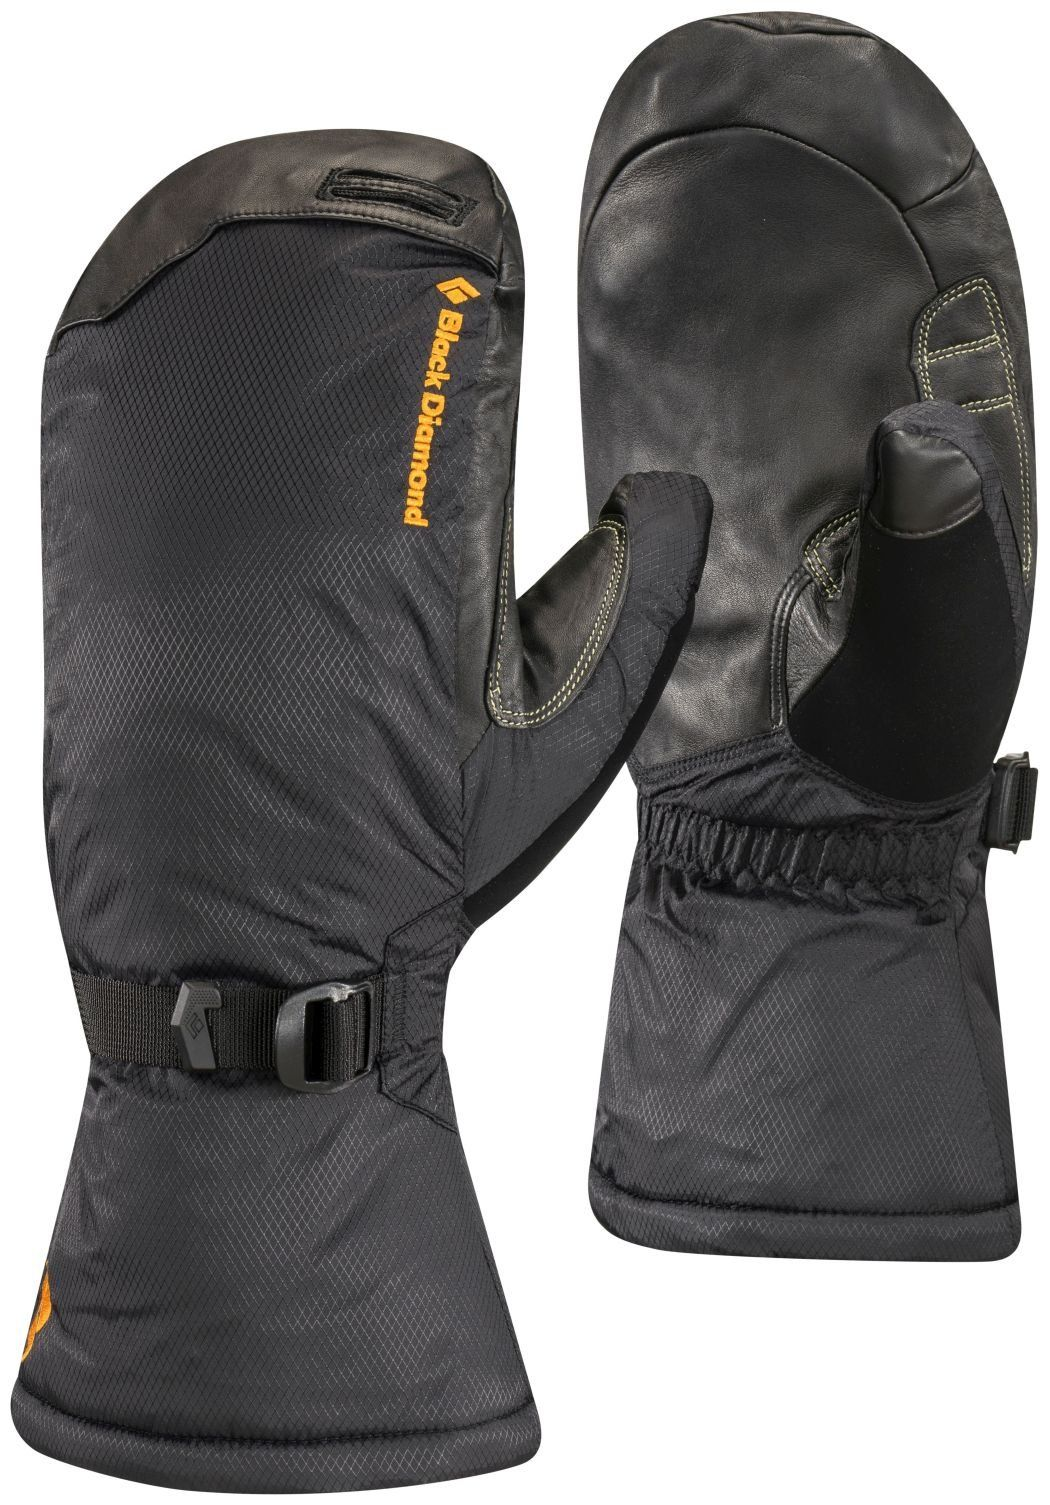 Large Cold Condition Gloves Black